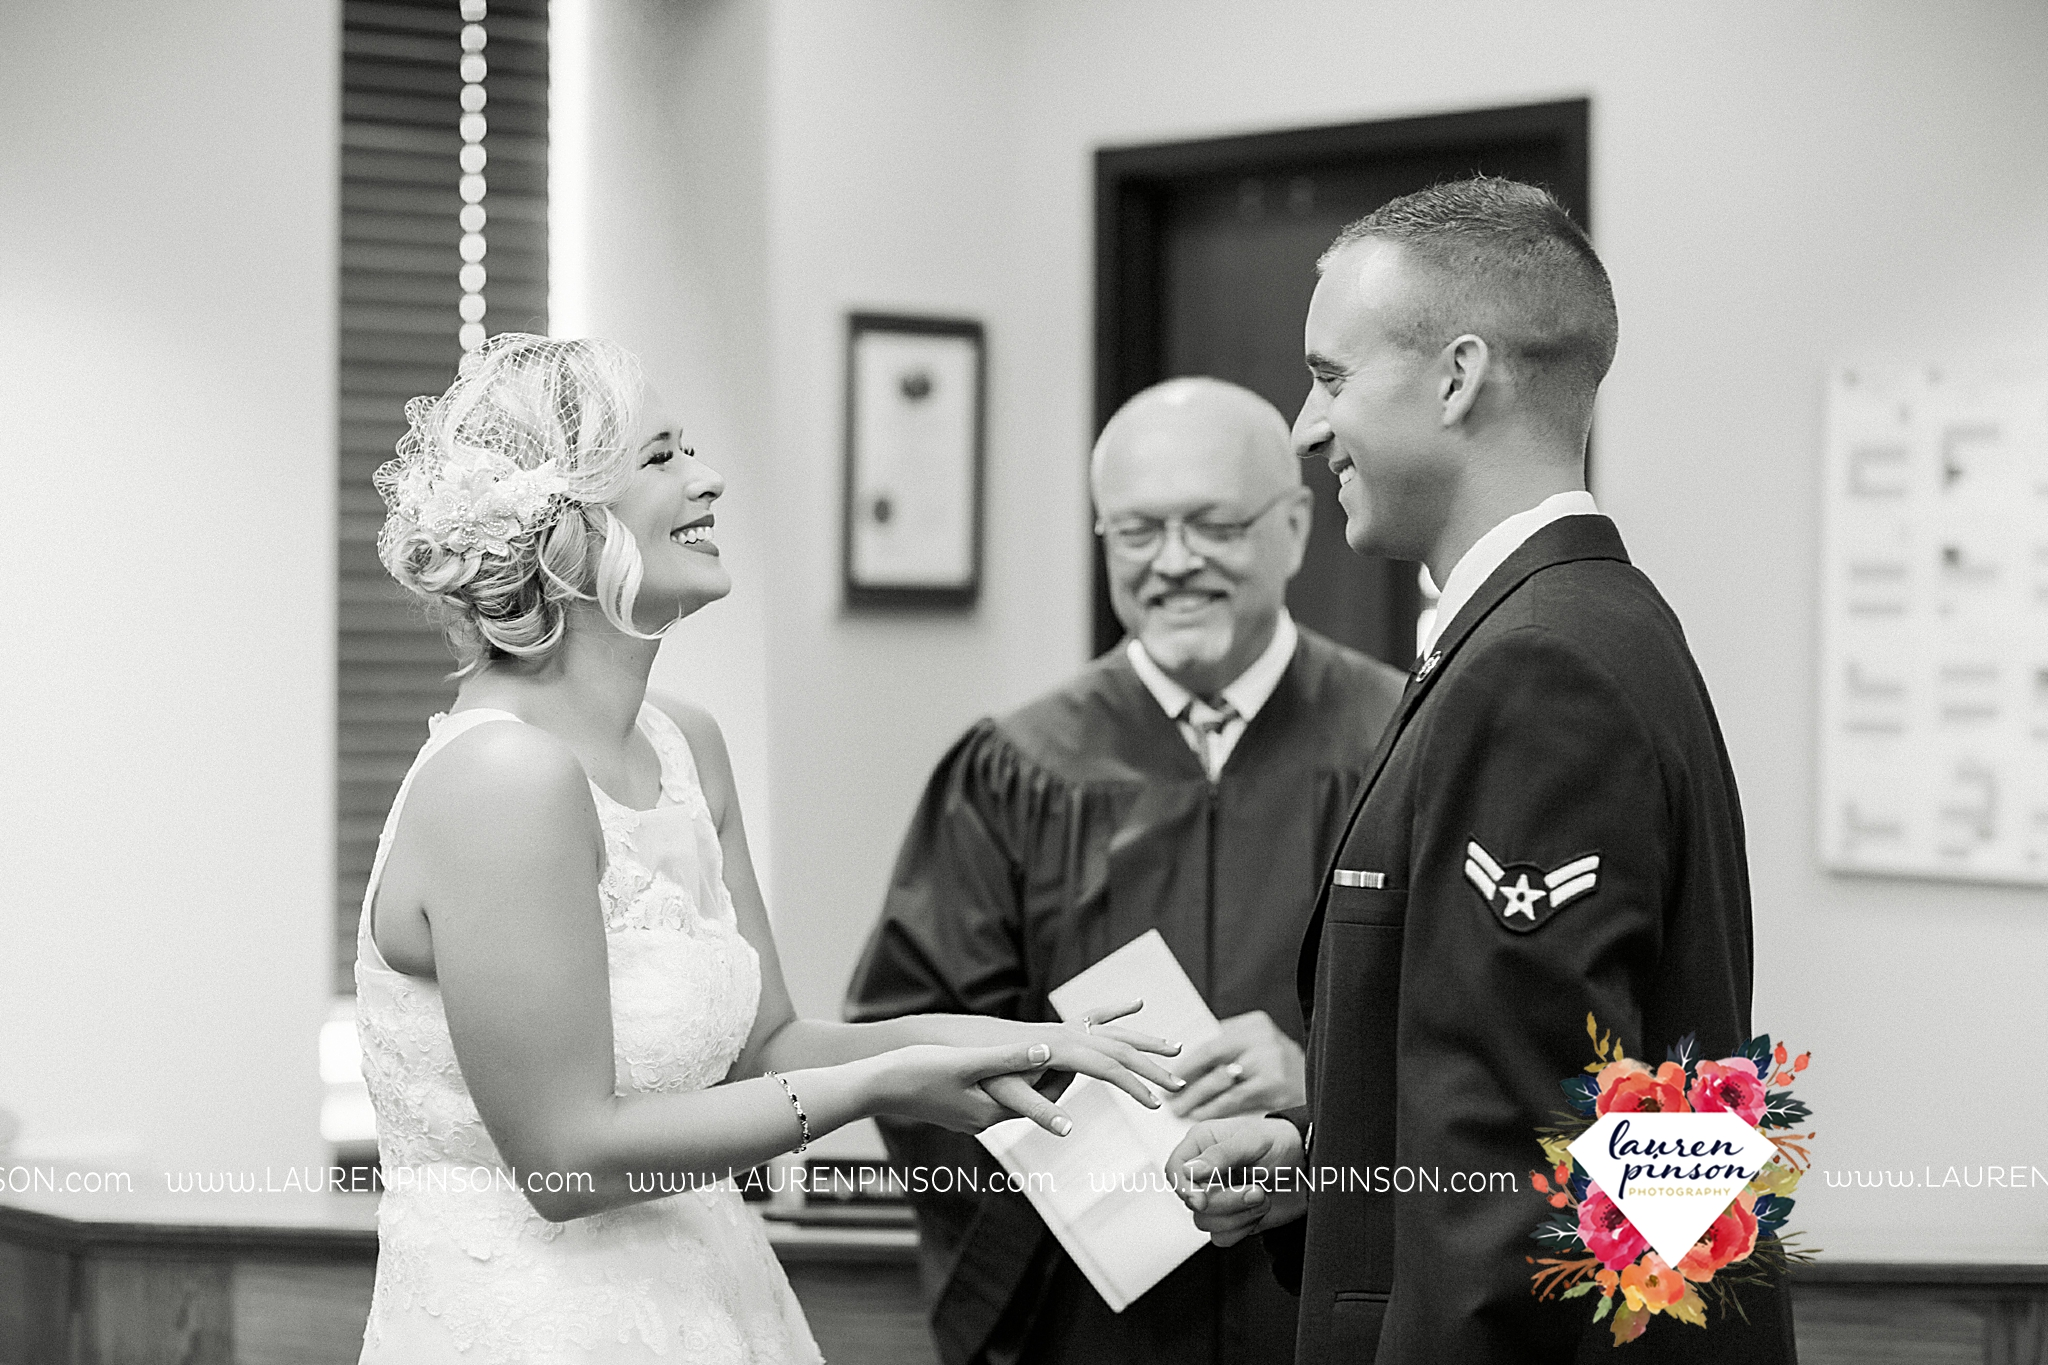 sheppard-afb-wichita-falls-texas-elopement-courthouse-wedding-photographer-justice-of-the-peace-judge-little-ceremony_3275.jpg